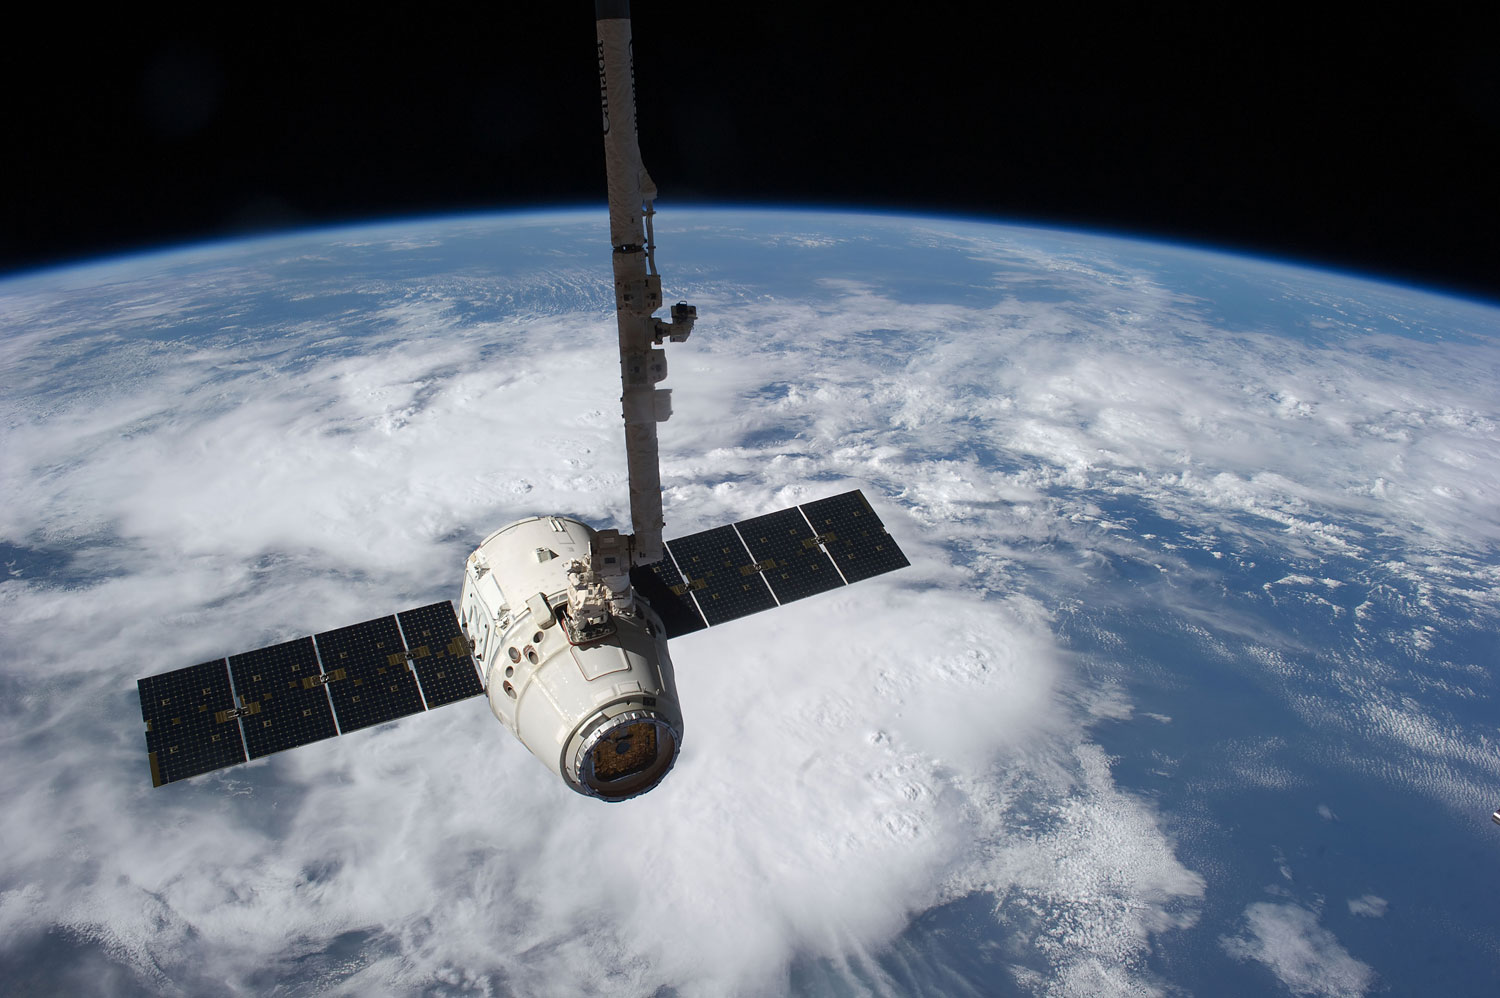 This image provided by NASA shows the SpaceX Dragon cargo craft just prior to being released by the International Space Station's robotic arm on May 31, 2012